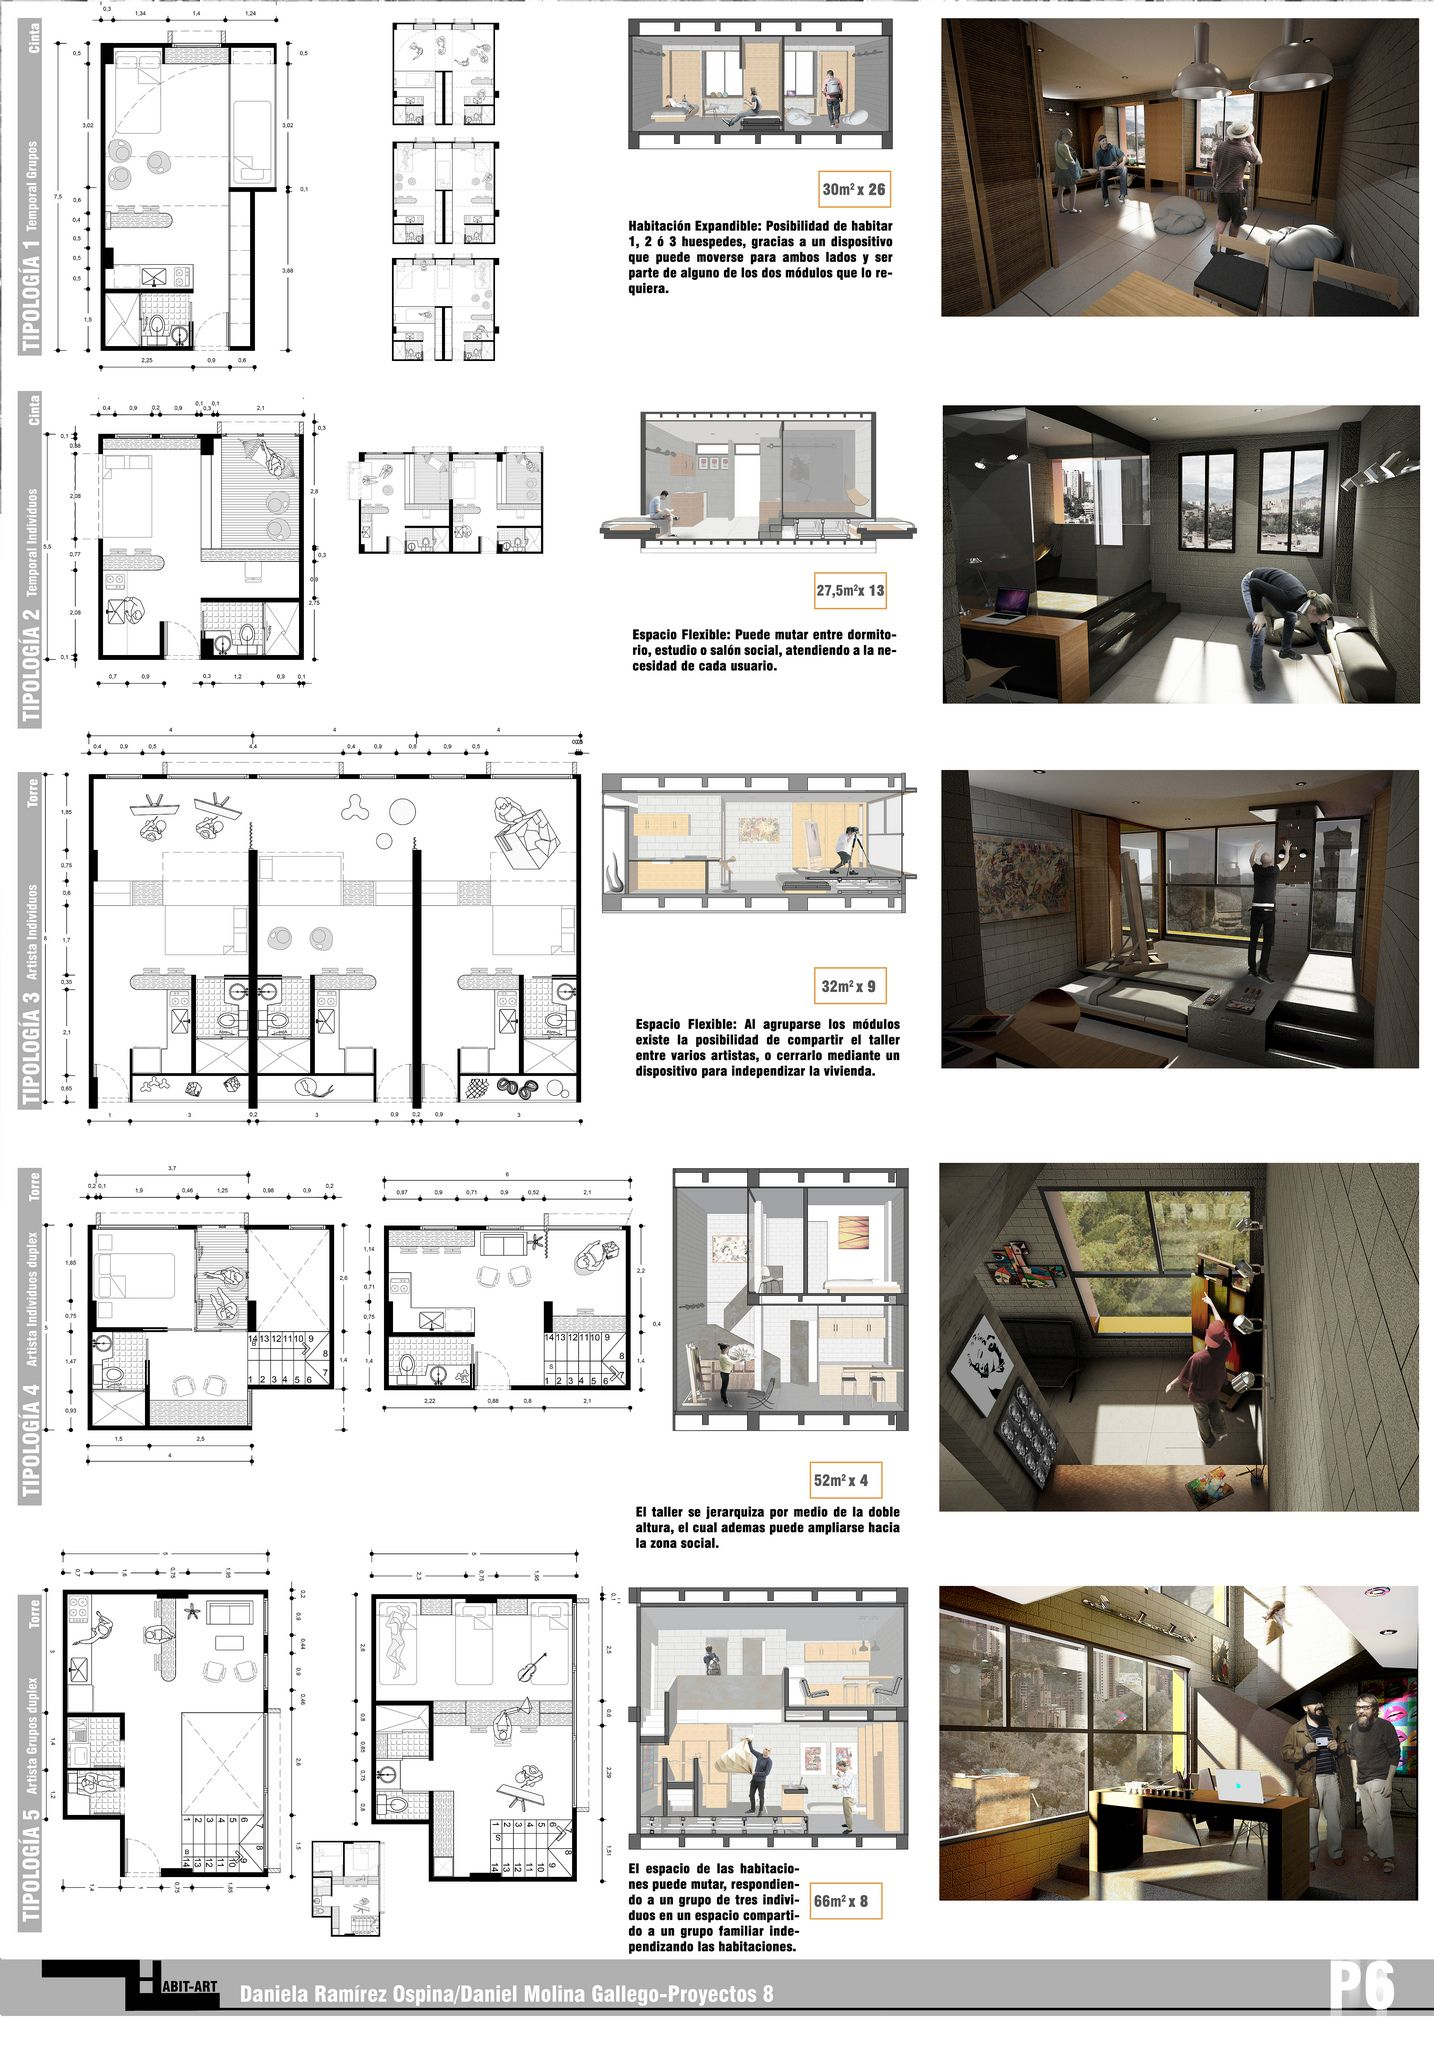 Plancha 6 entrega final talle architecture interior - Interior design presentation layout ...